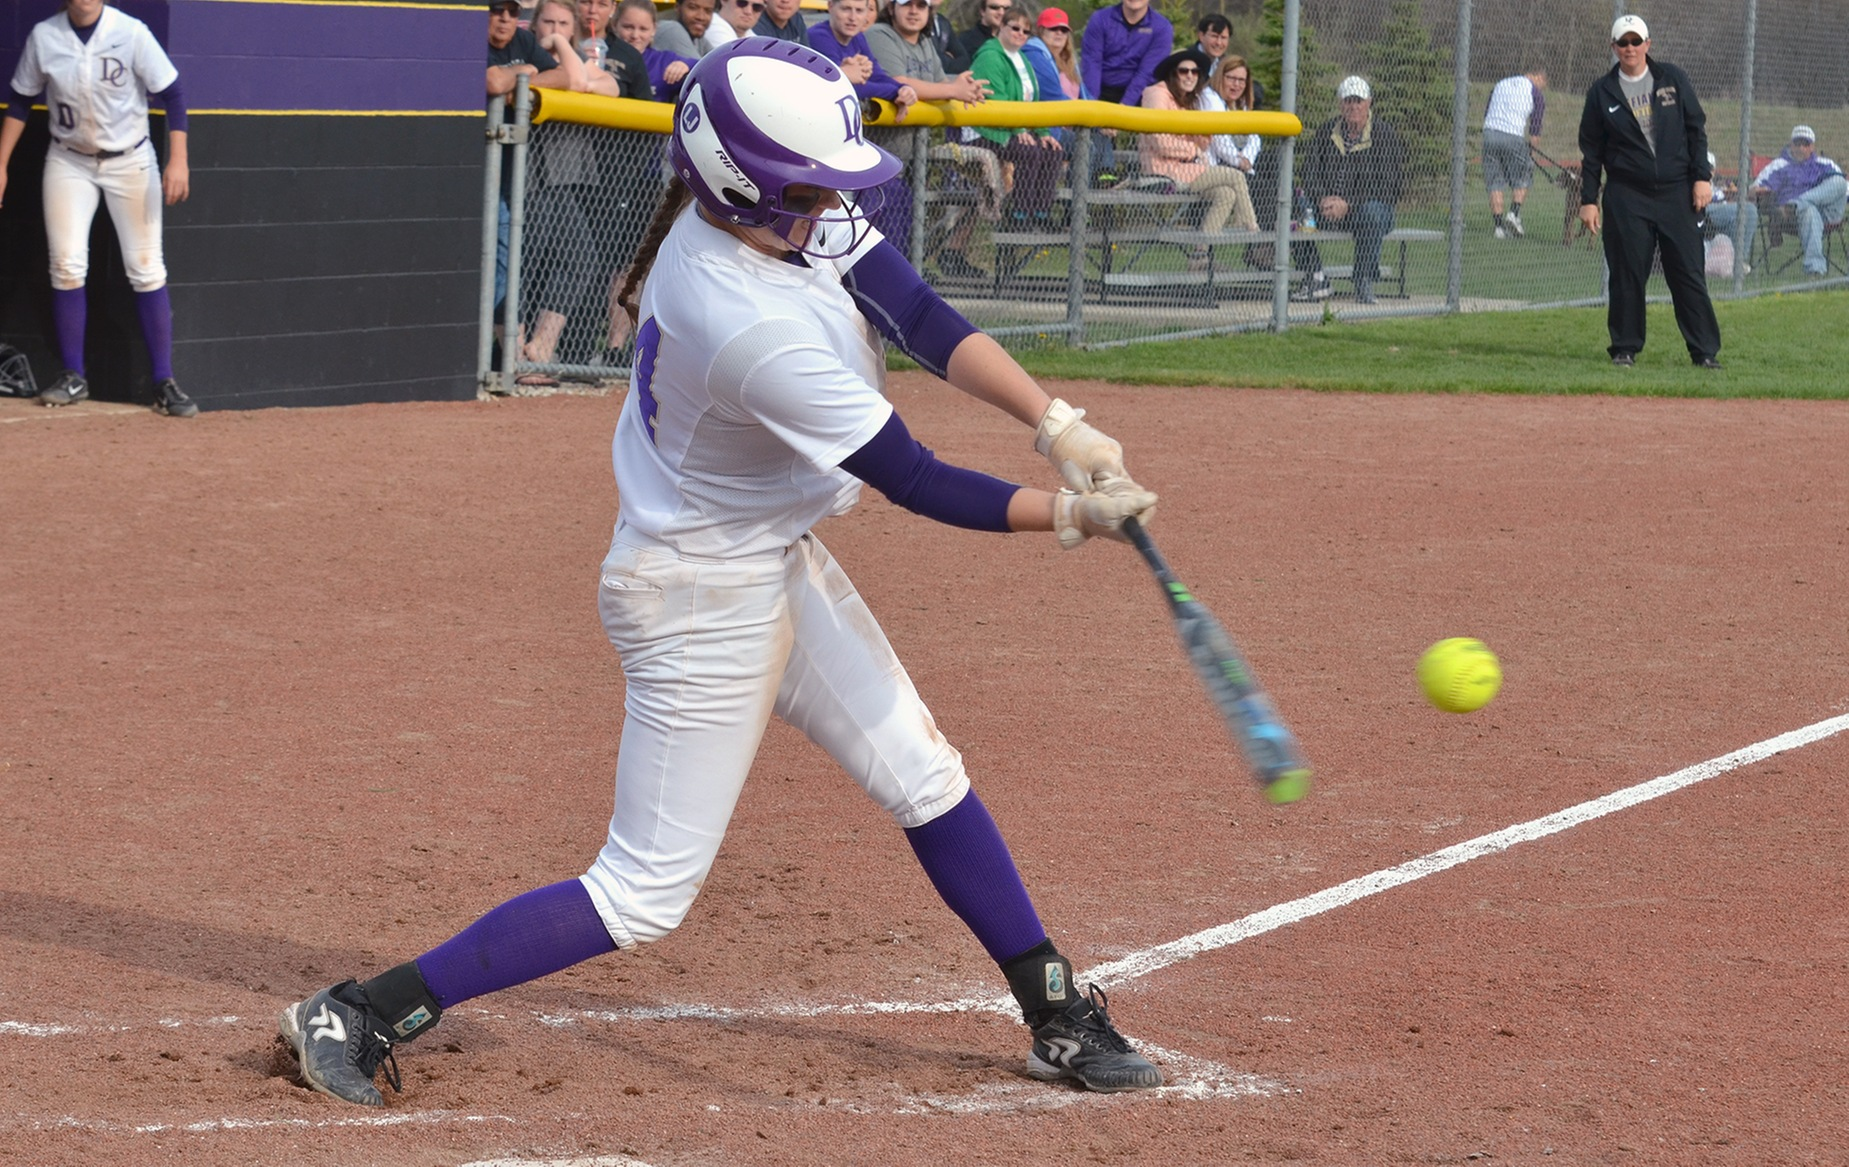 Yellow Jackets Fall in HCAC Tourney Opener